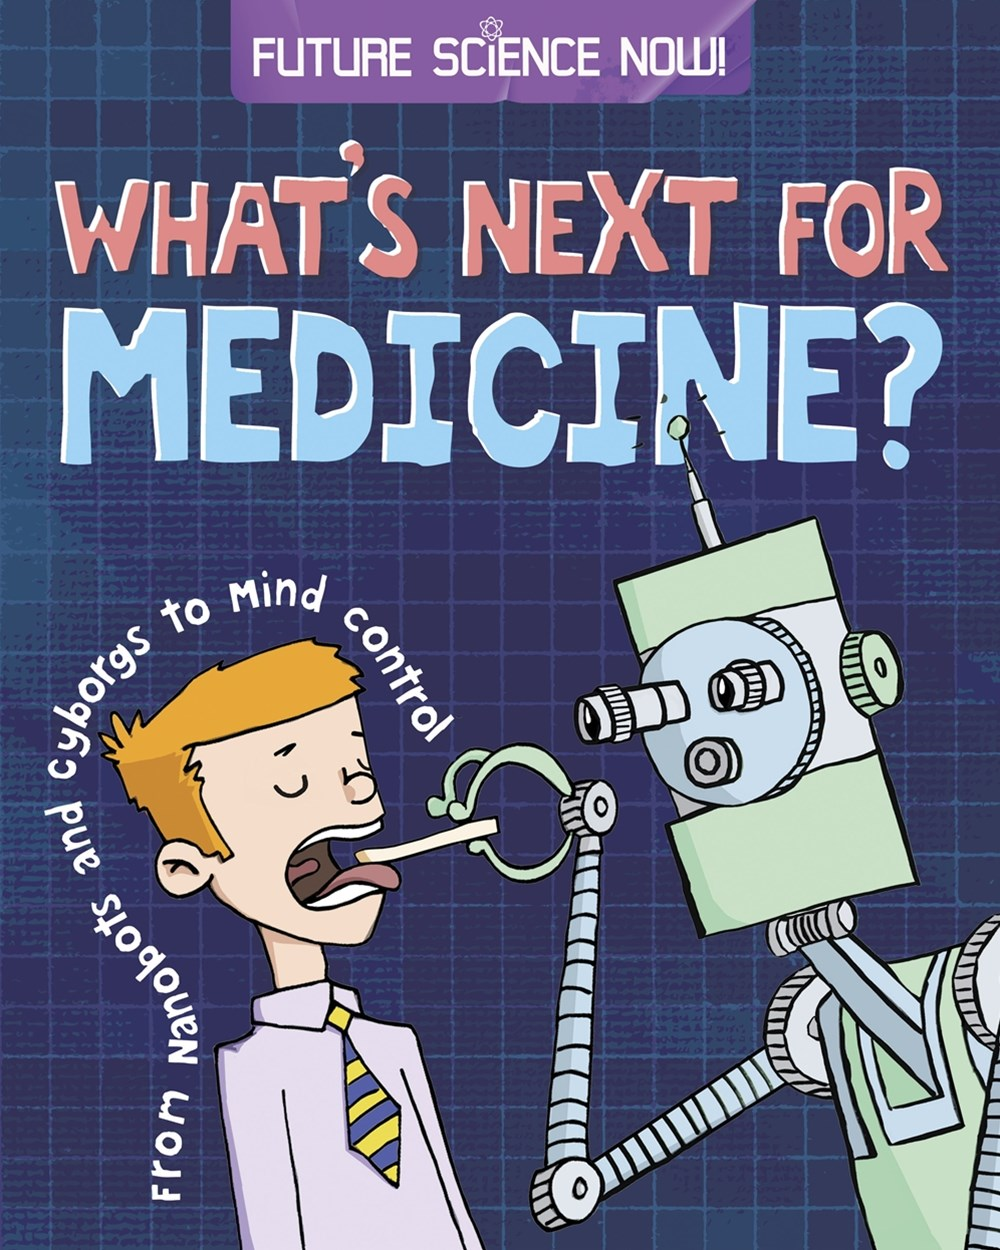 Future Science Now!: Medicine